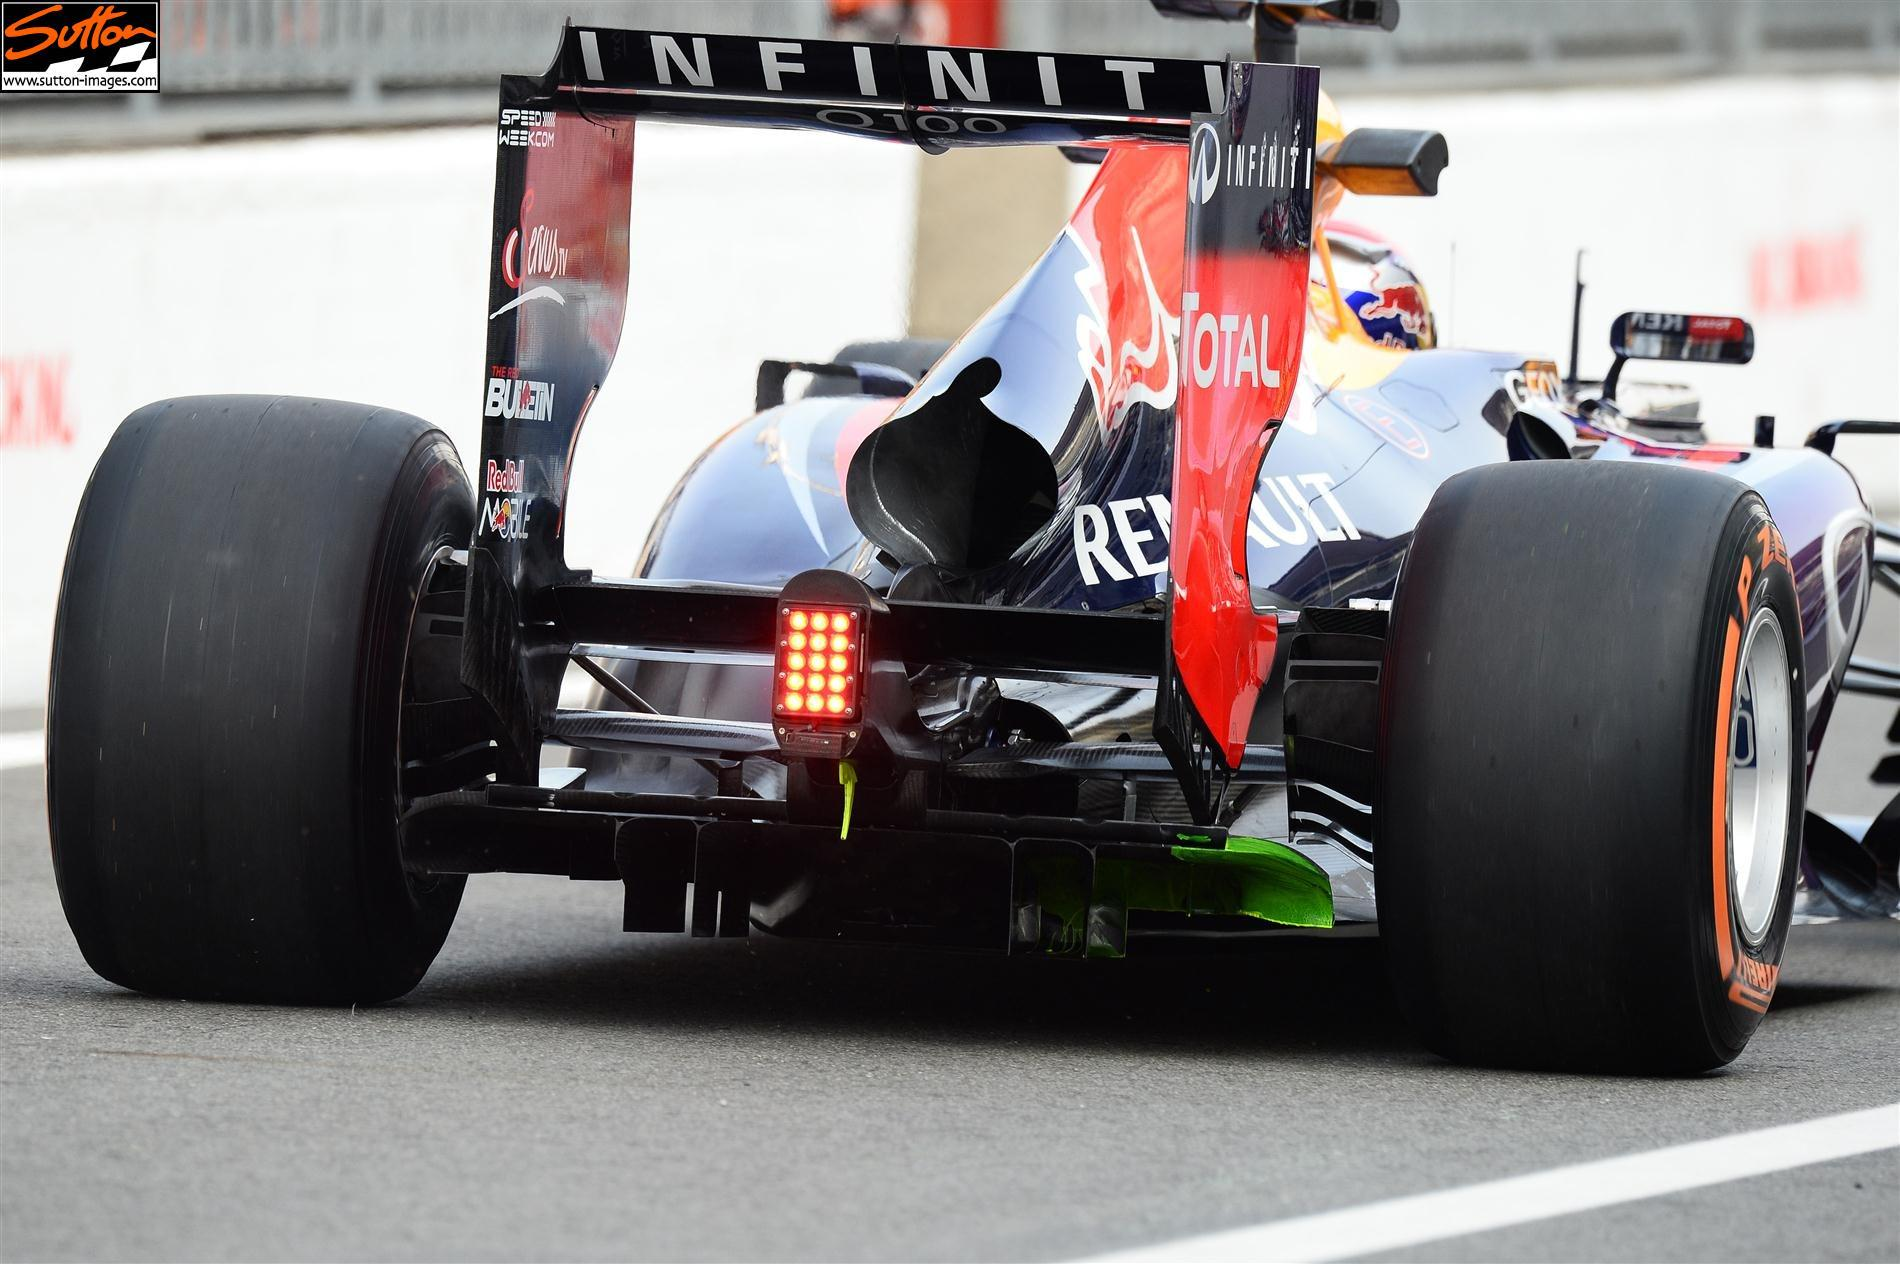 hight resolution of red bull rear wing monza 2013